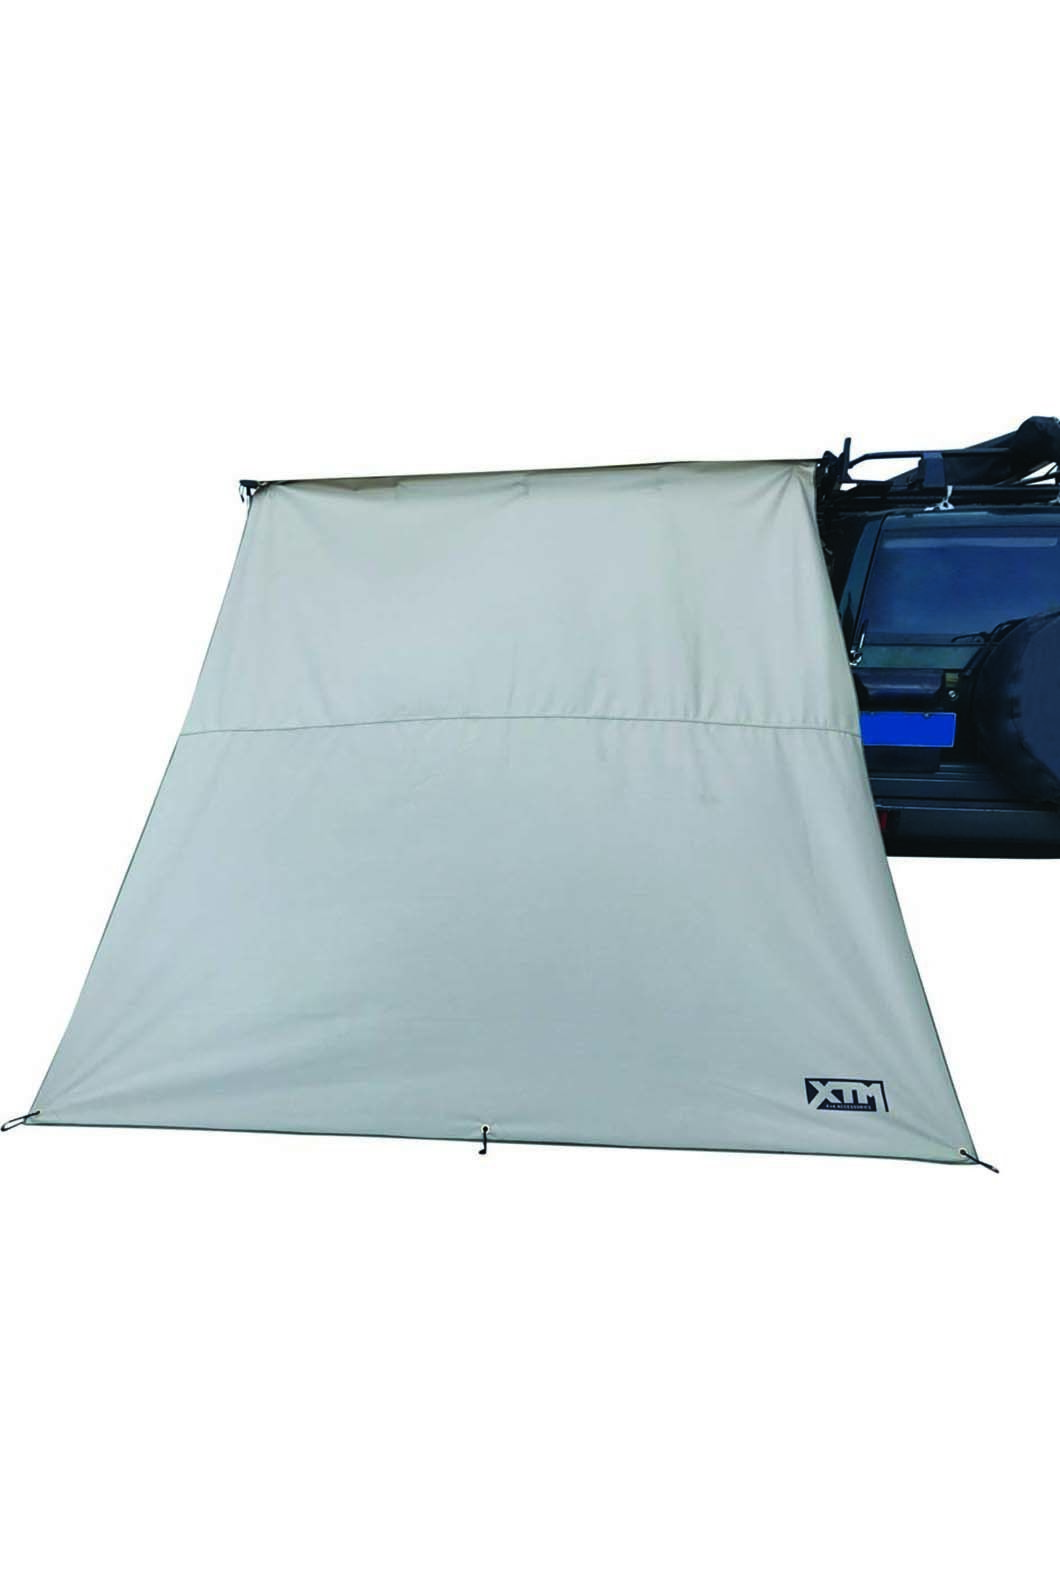 4X4 Car Awning Side Wall 2m, None, hi-res